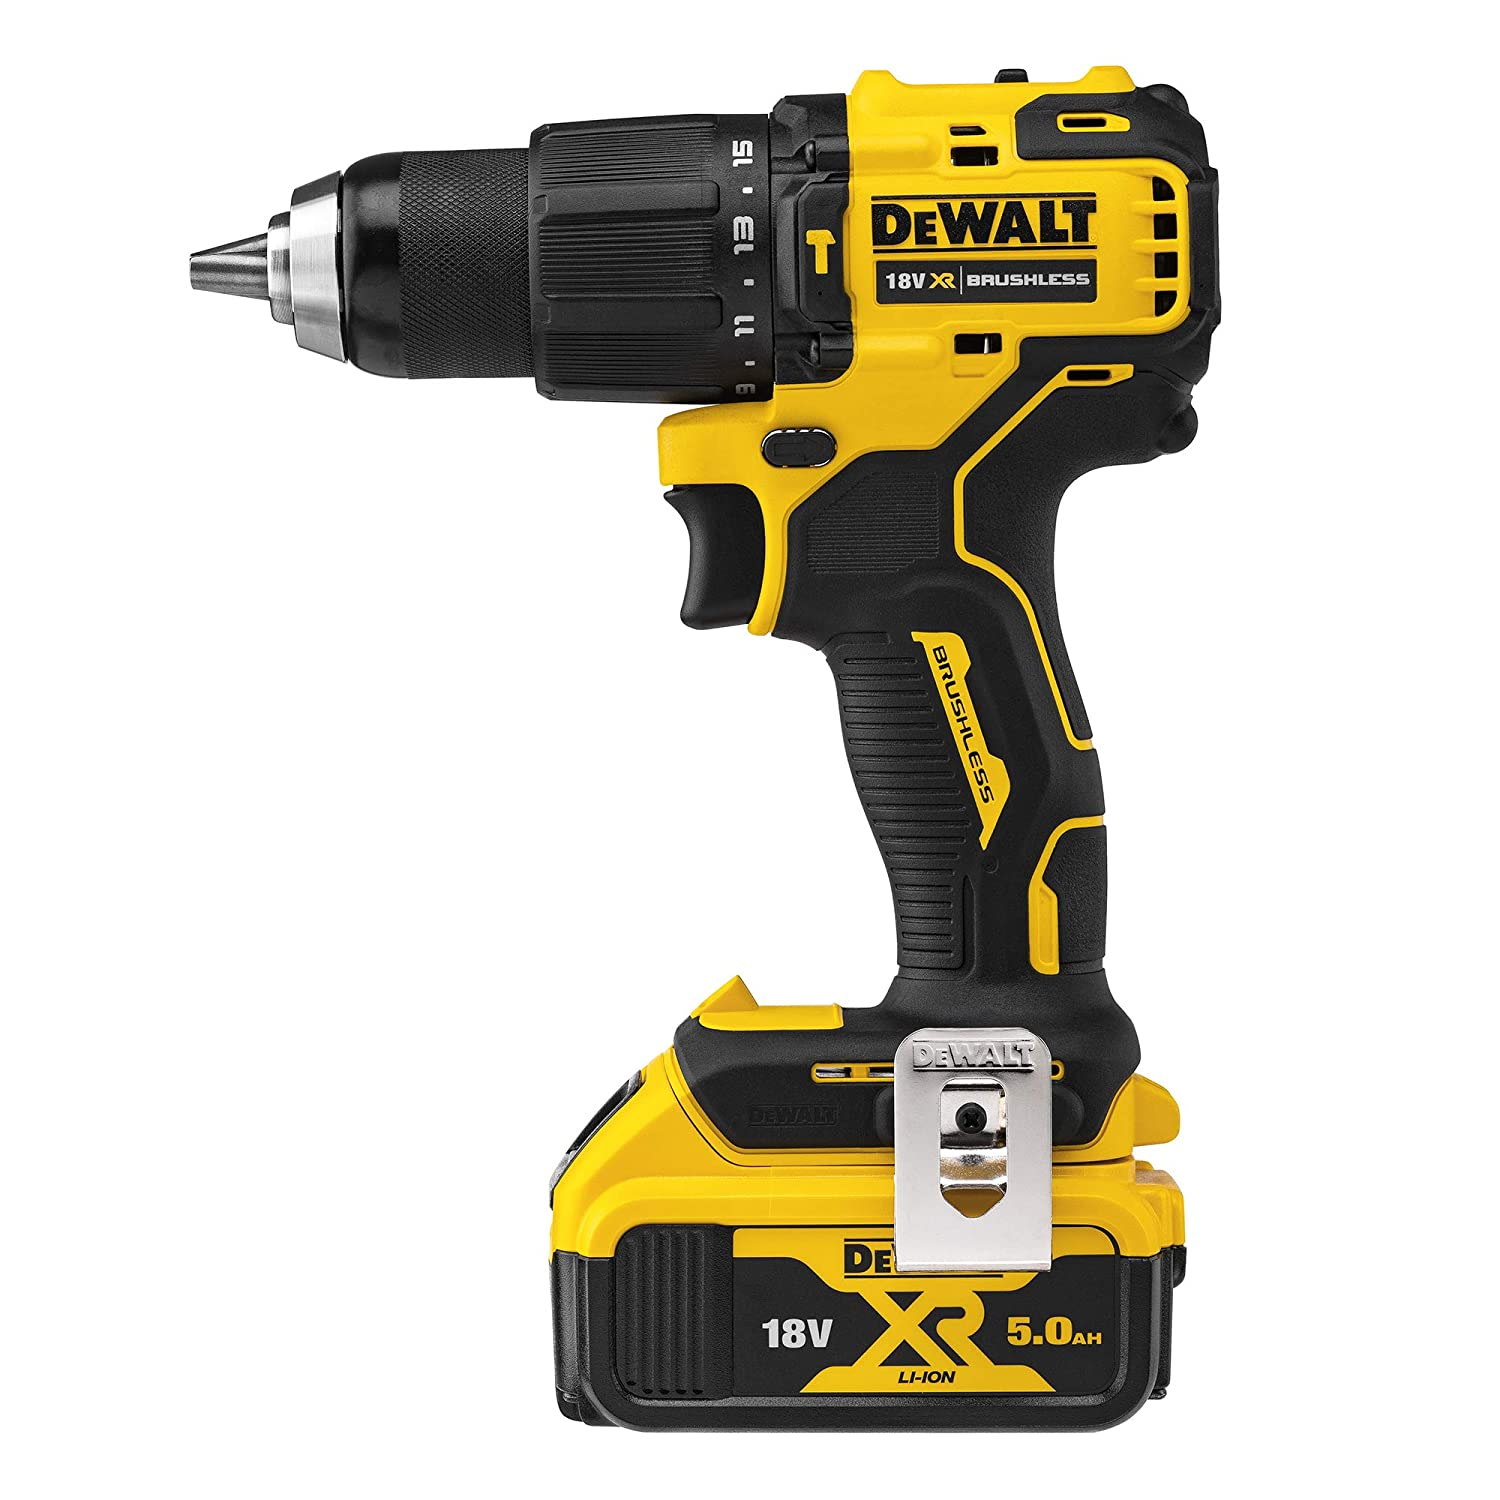 18V Brushless Compact Hammer Drill Driver 1.5Ah Battery